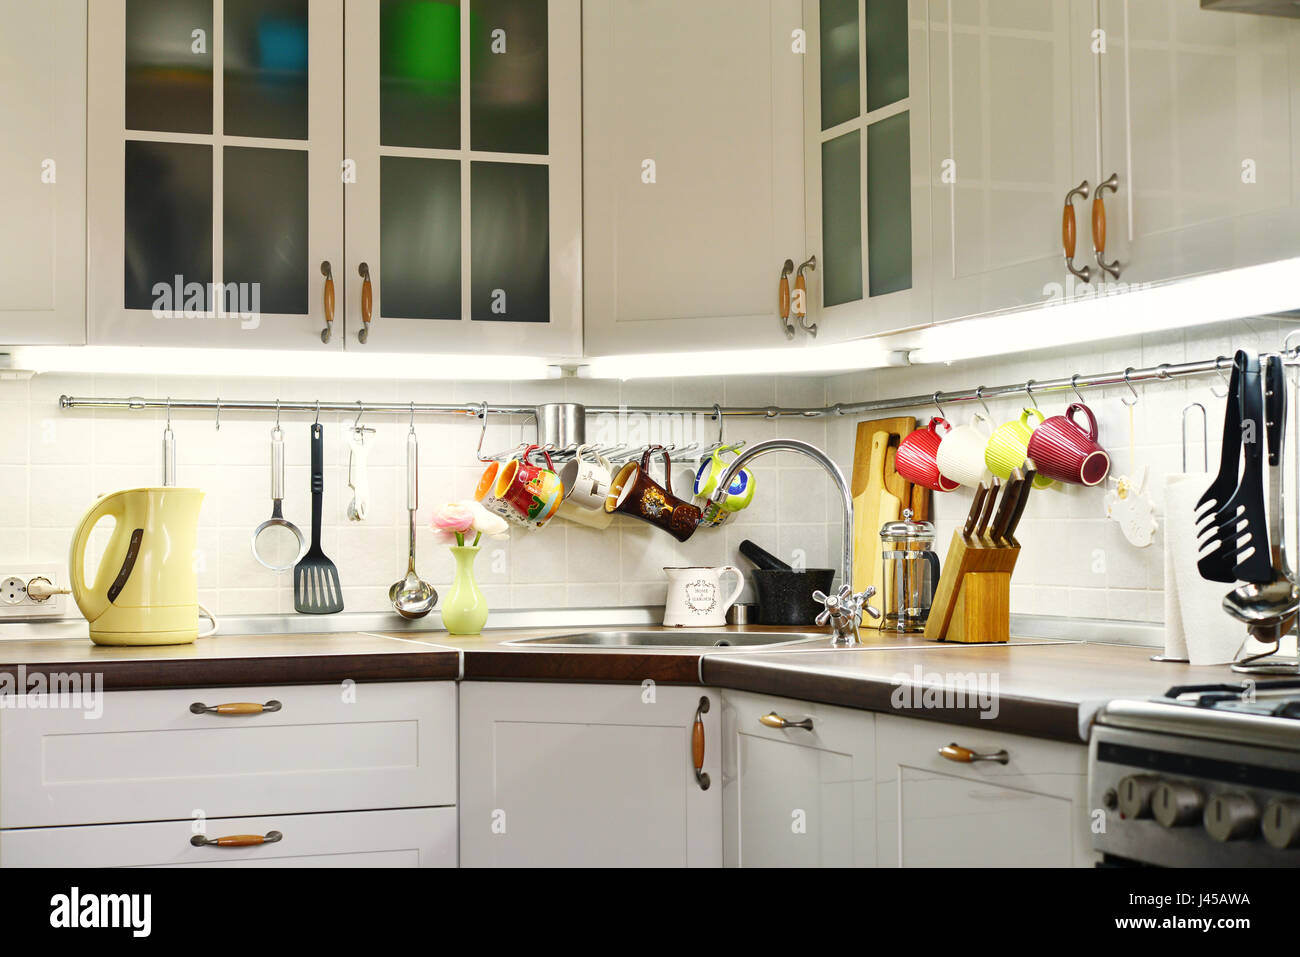 A fragment of the Scandinavian style kitchen with rail system and kitchen utensils - Stock Image